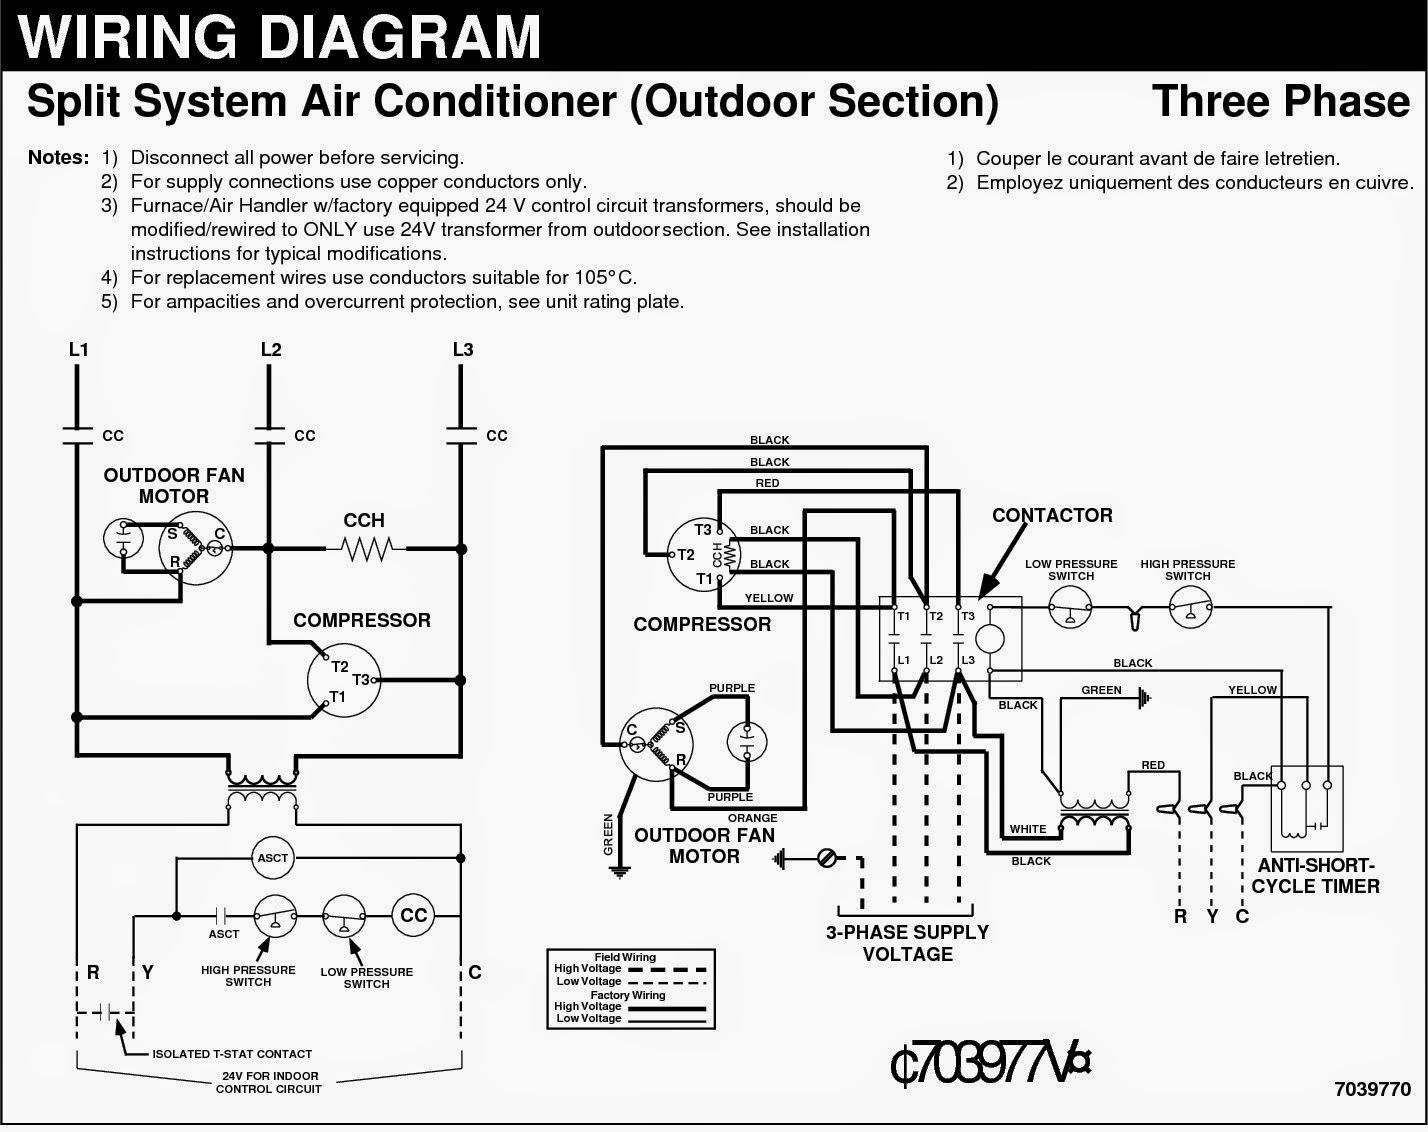 peterbilt 379 wiring diagram on peterbilt 367 wiring diagram acpeterbilt 379 wiring diagram on peterbilt 367 wiring diagram ac